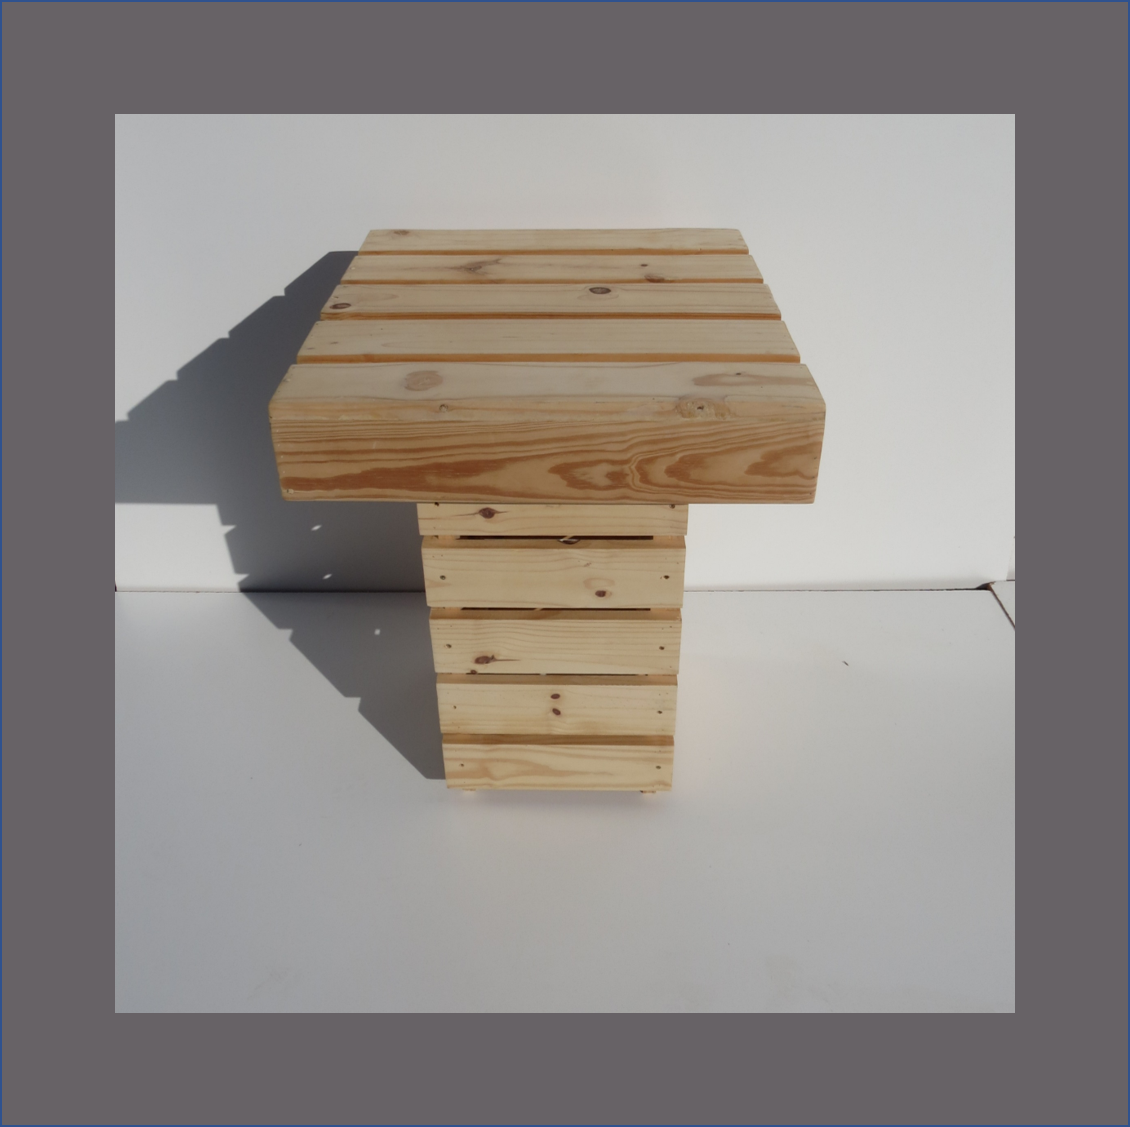 pine-slatted-cafe-table